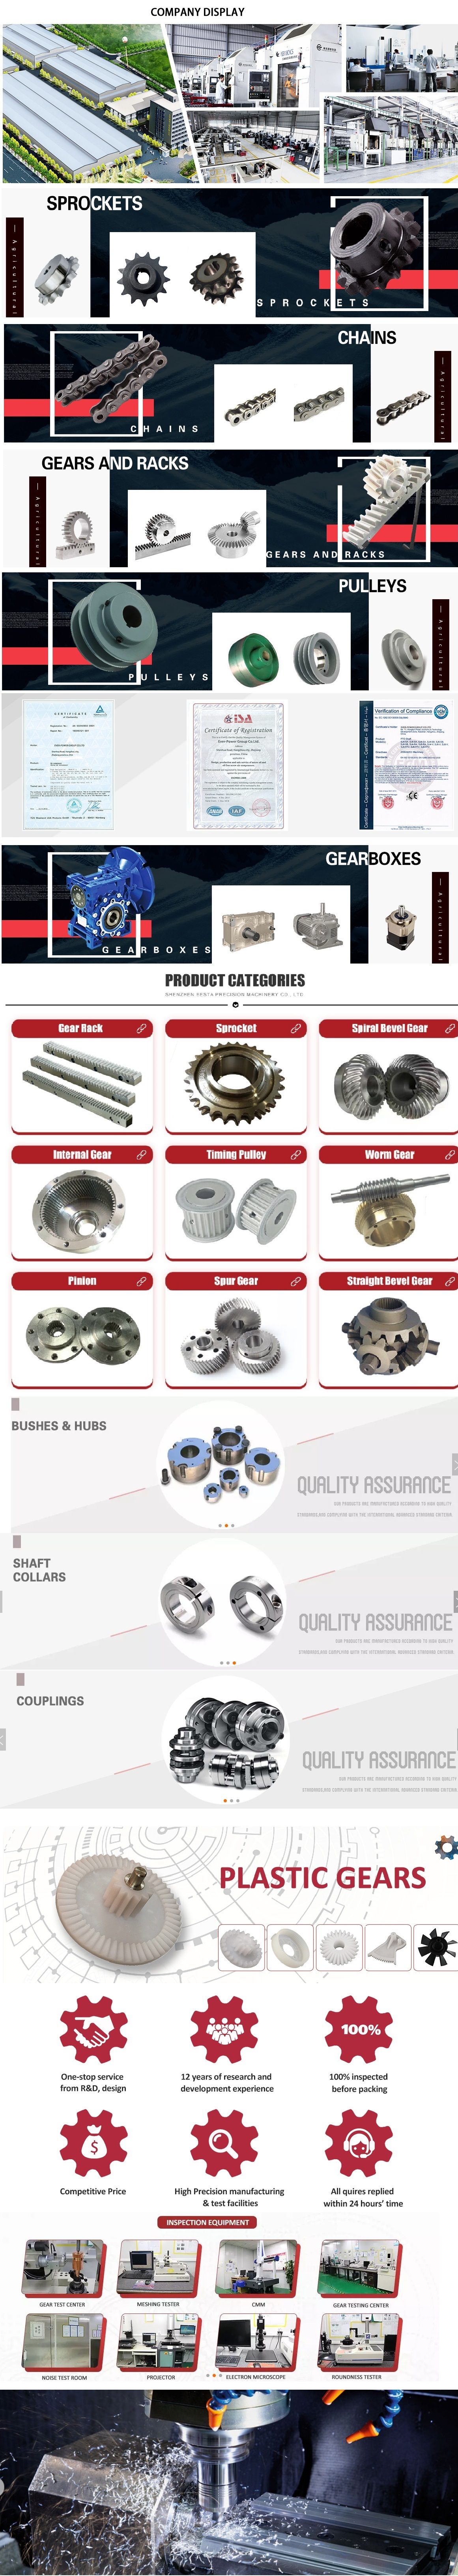 in Antalya Turkey  sales   price   shop   near me   near me shop   factory   supplier HSS M2 M35 Sleeved Chain Sprocket Rolling Hob Cutter RS60 manufacturer   best   Cost   Custom   Cheap   wholesaler